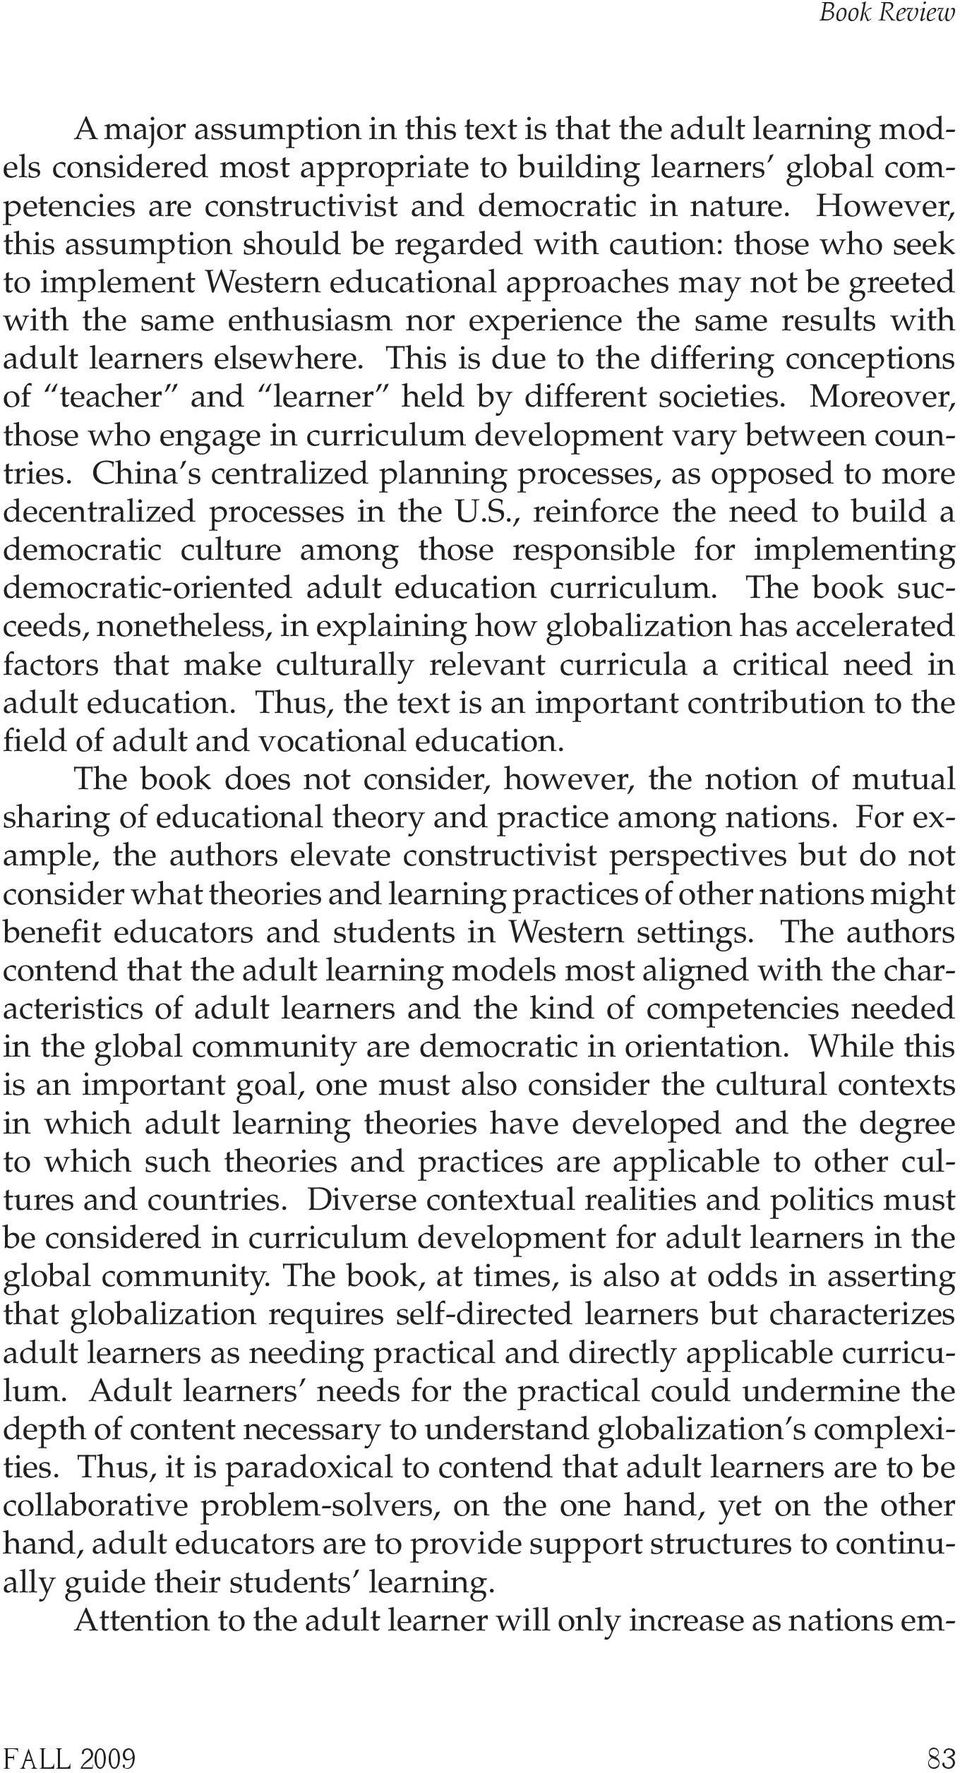 adult learners elsewhere. This is due to the differing conceptions of teacher and learner held by different societies. Moreover, those who engage in curriculum development vary between countries.